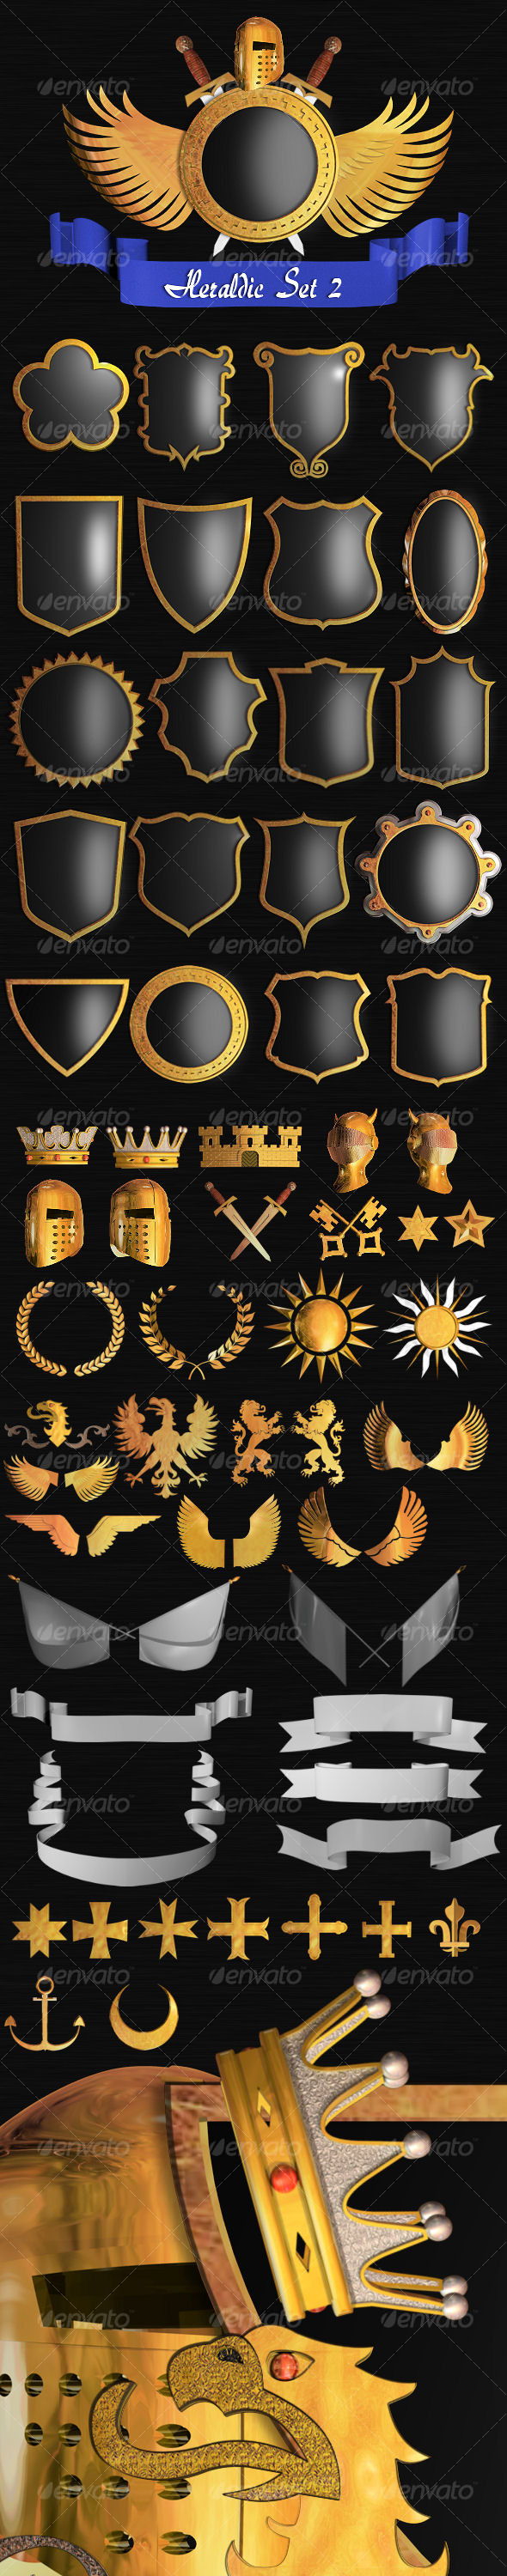 Heraldic Set II - Objects 3D Renders